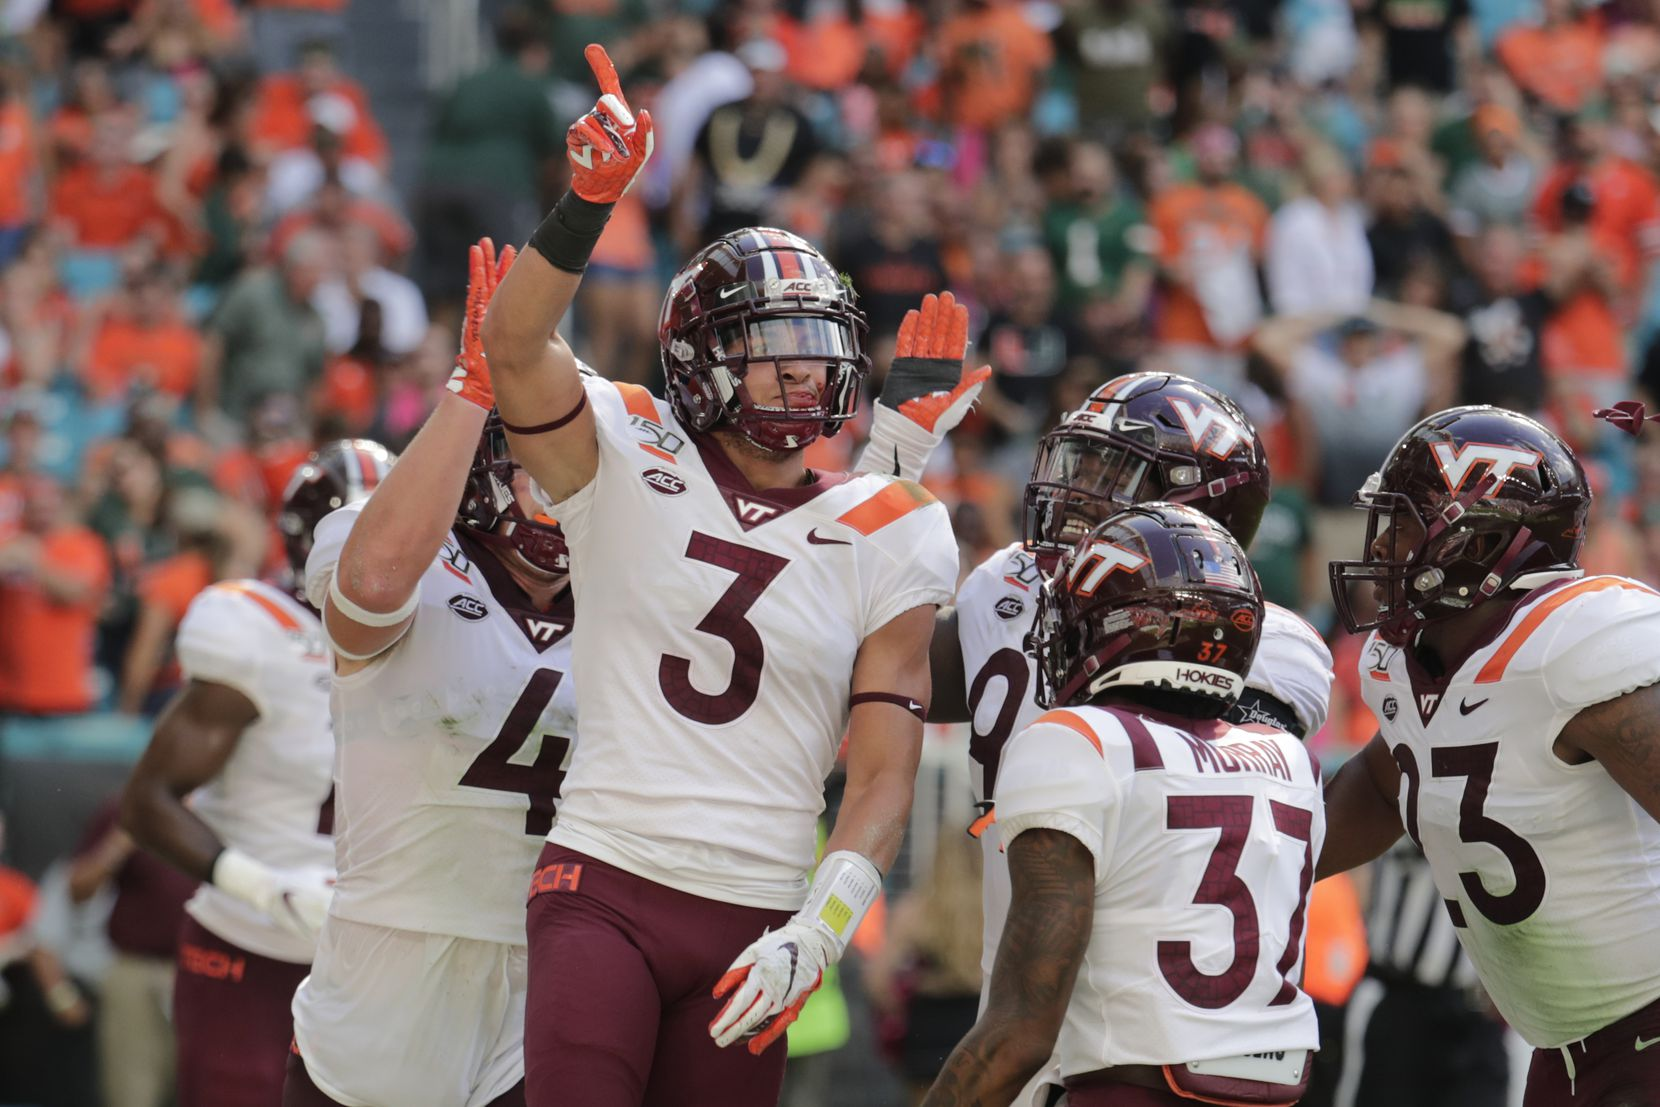 In this Oct. 5, 2019, file photo, Virginia Tech defensive back Caleb Farley (3) celebrates after intercepting a pass during the first half of the team's NCAA college football game against Miami in Miami Gardens, Fla.